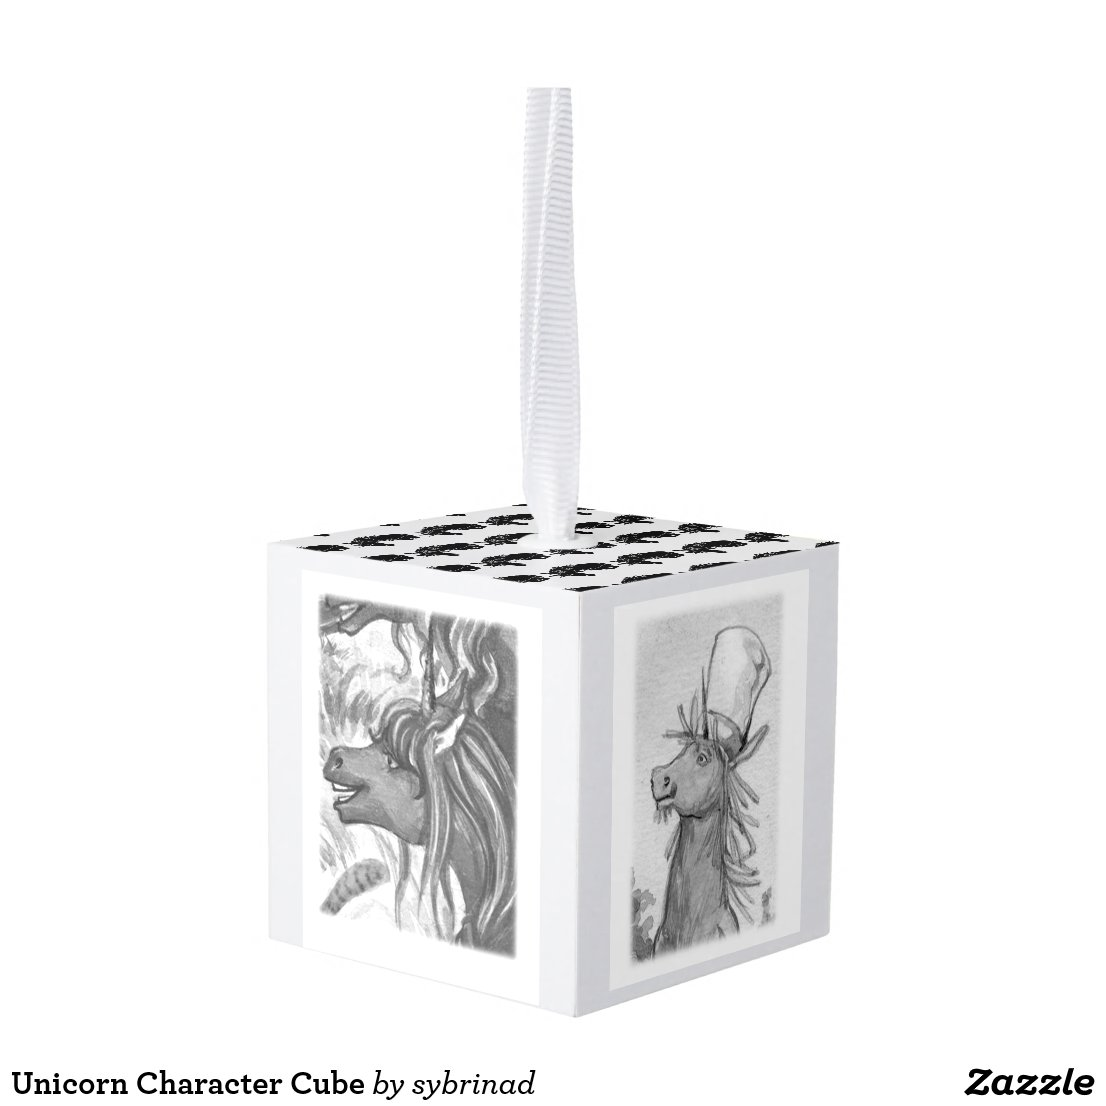 Unicorn Character Cube Cube Ornament